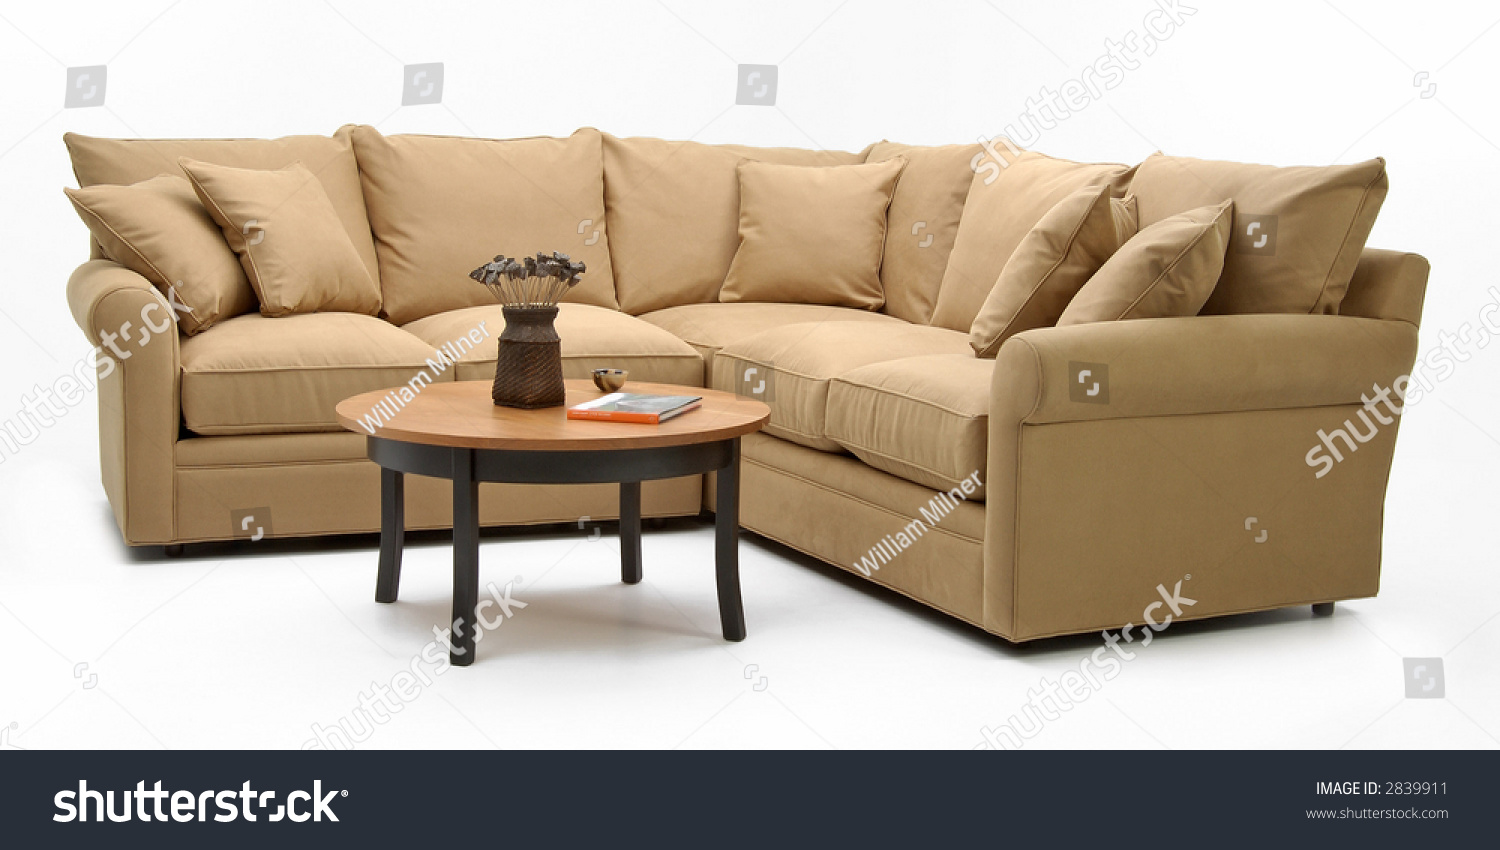 Sectional Sofa Coffee Table Stock Photo 2839911 Shutterstock